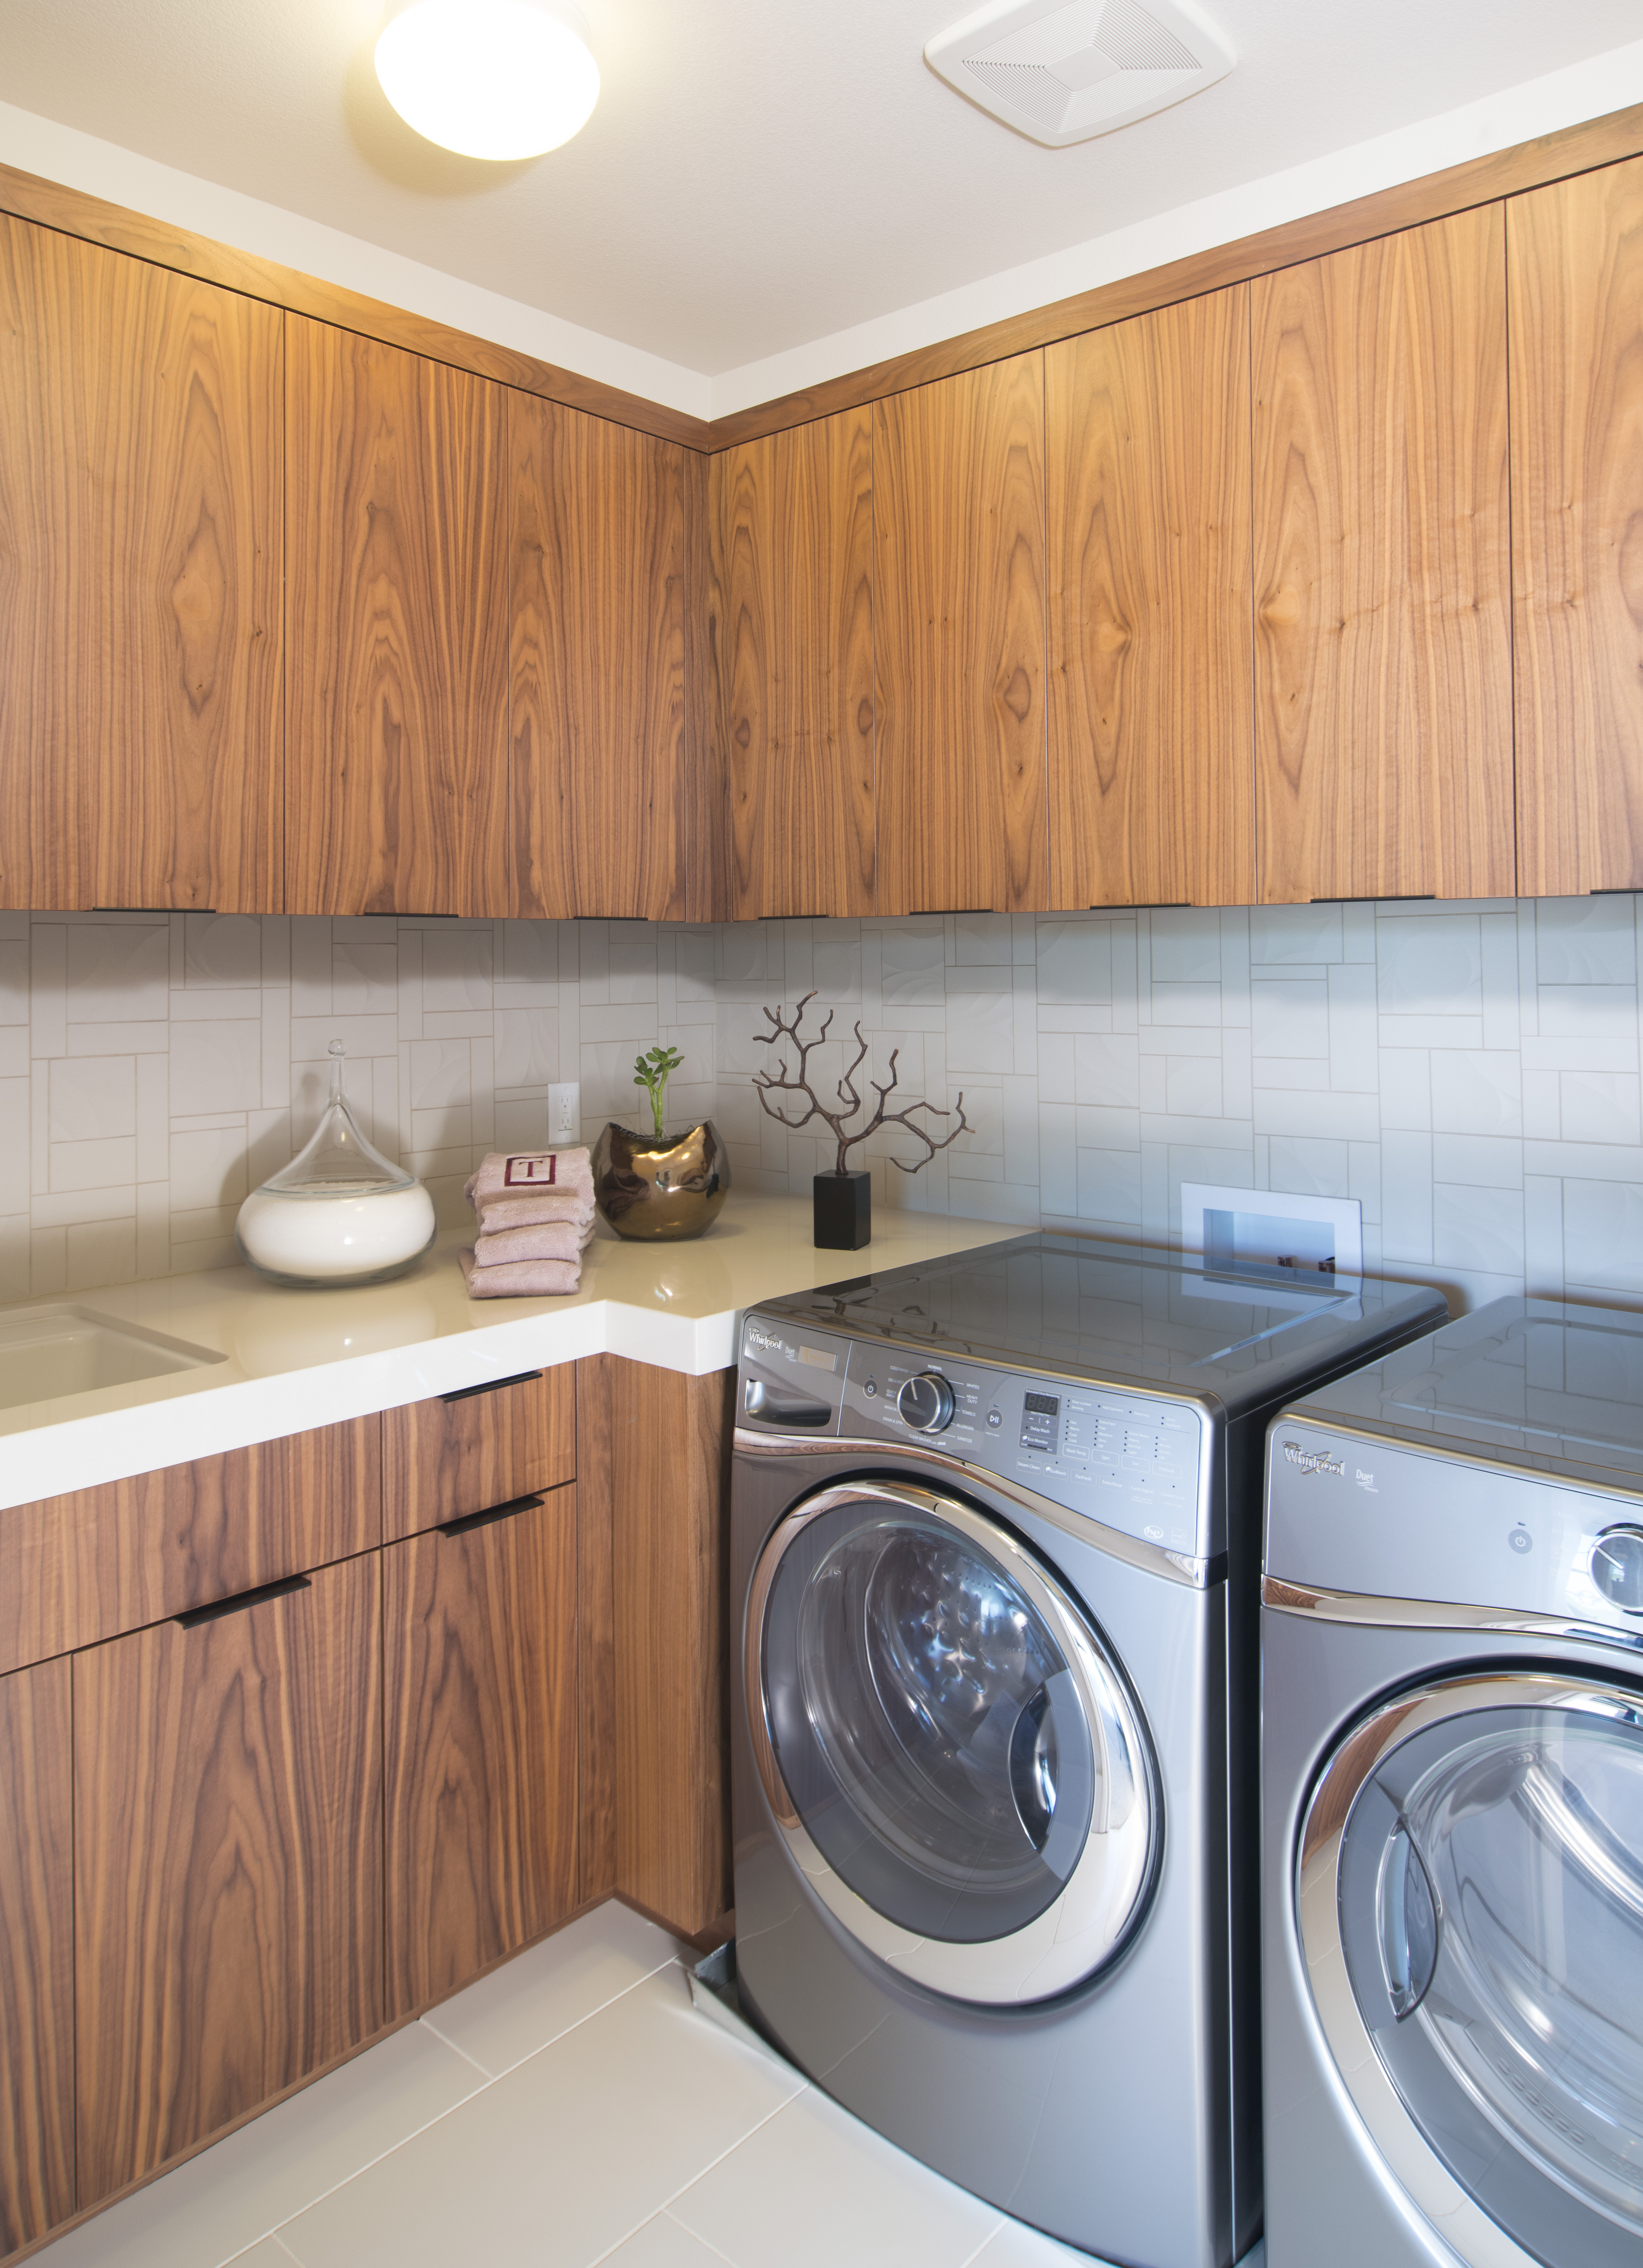 Beautiful Contemporary Laundry Room Built-Ins made out of Walnut and Finished with a Natural Clear Coat